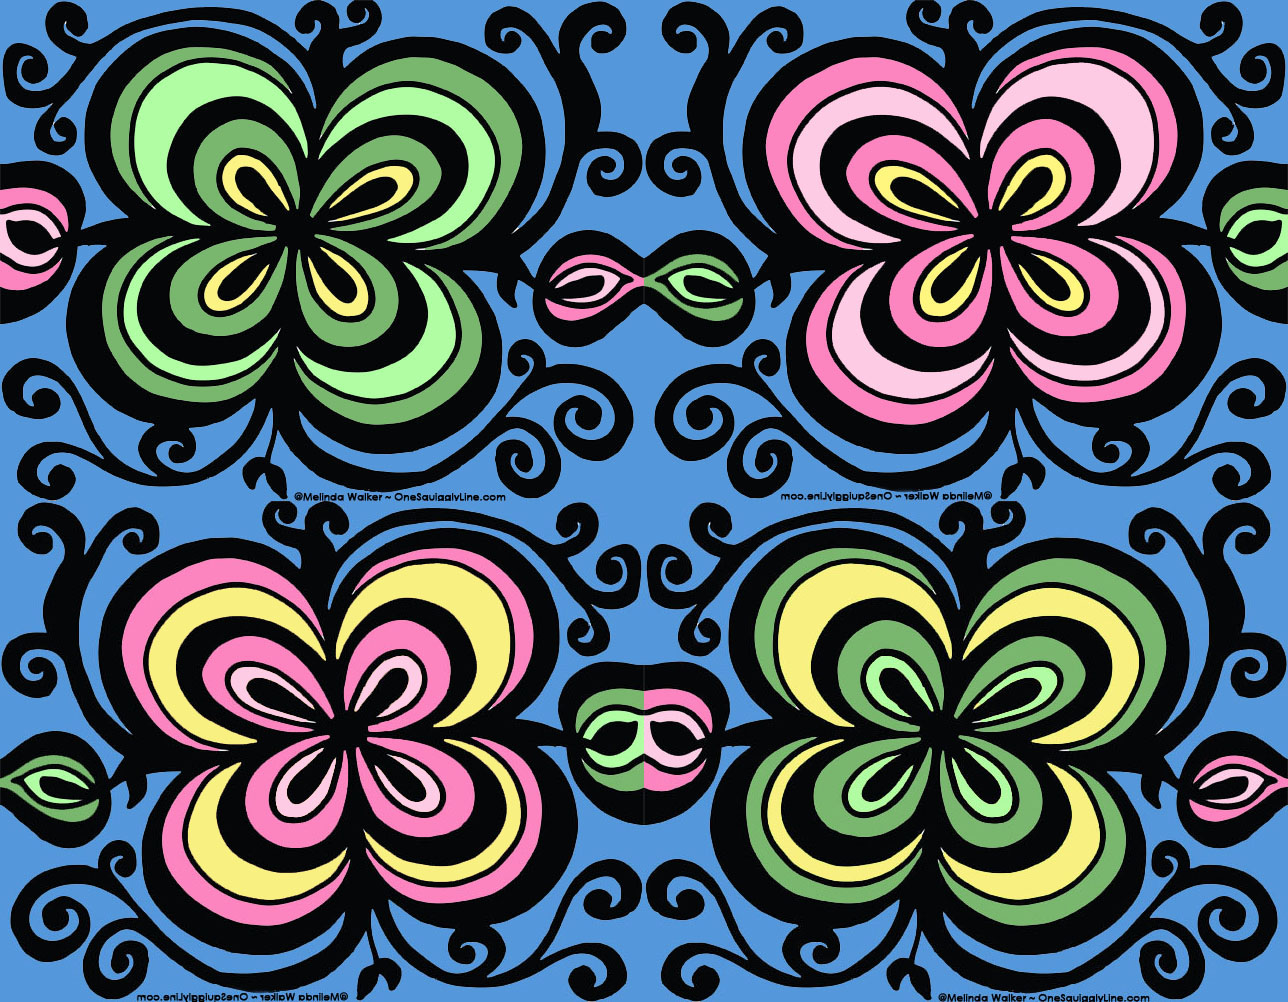 FlowerDoodle_ThickThinLines_ConcentricShapes_VisualThinking_Design_MelindaWalker_OneSquigglyLine